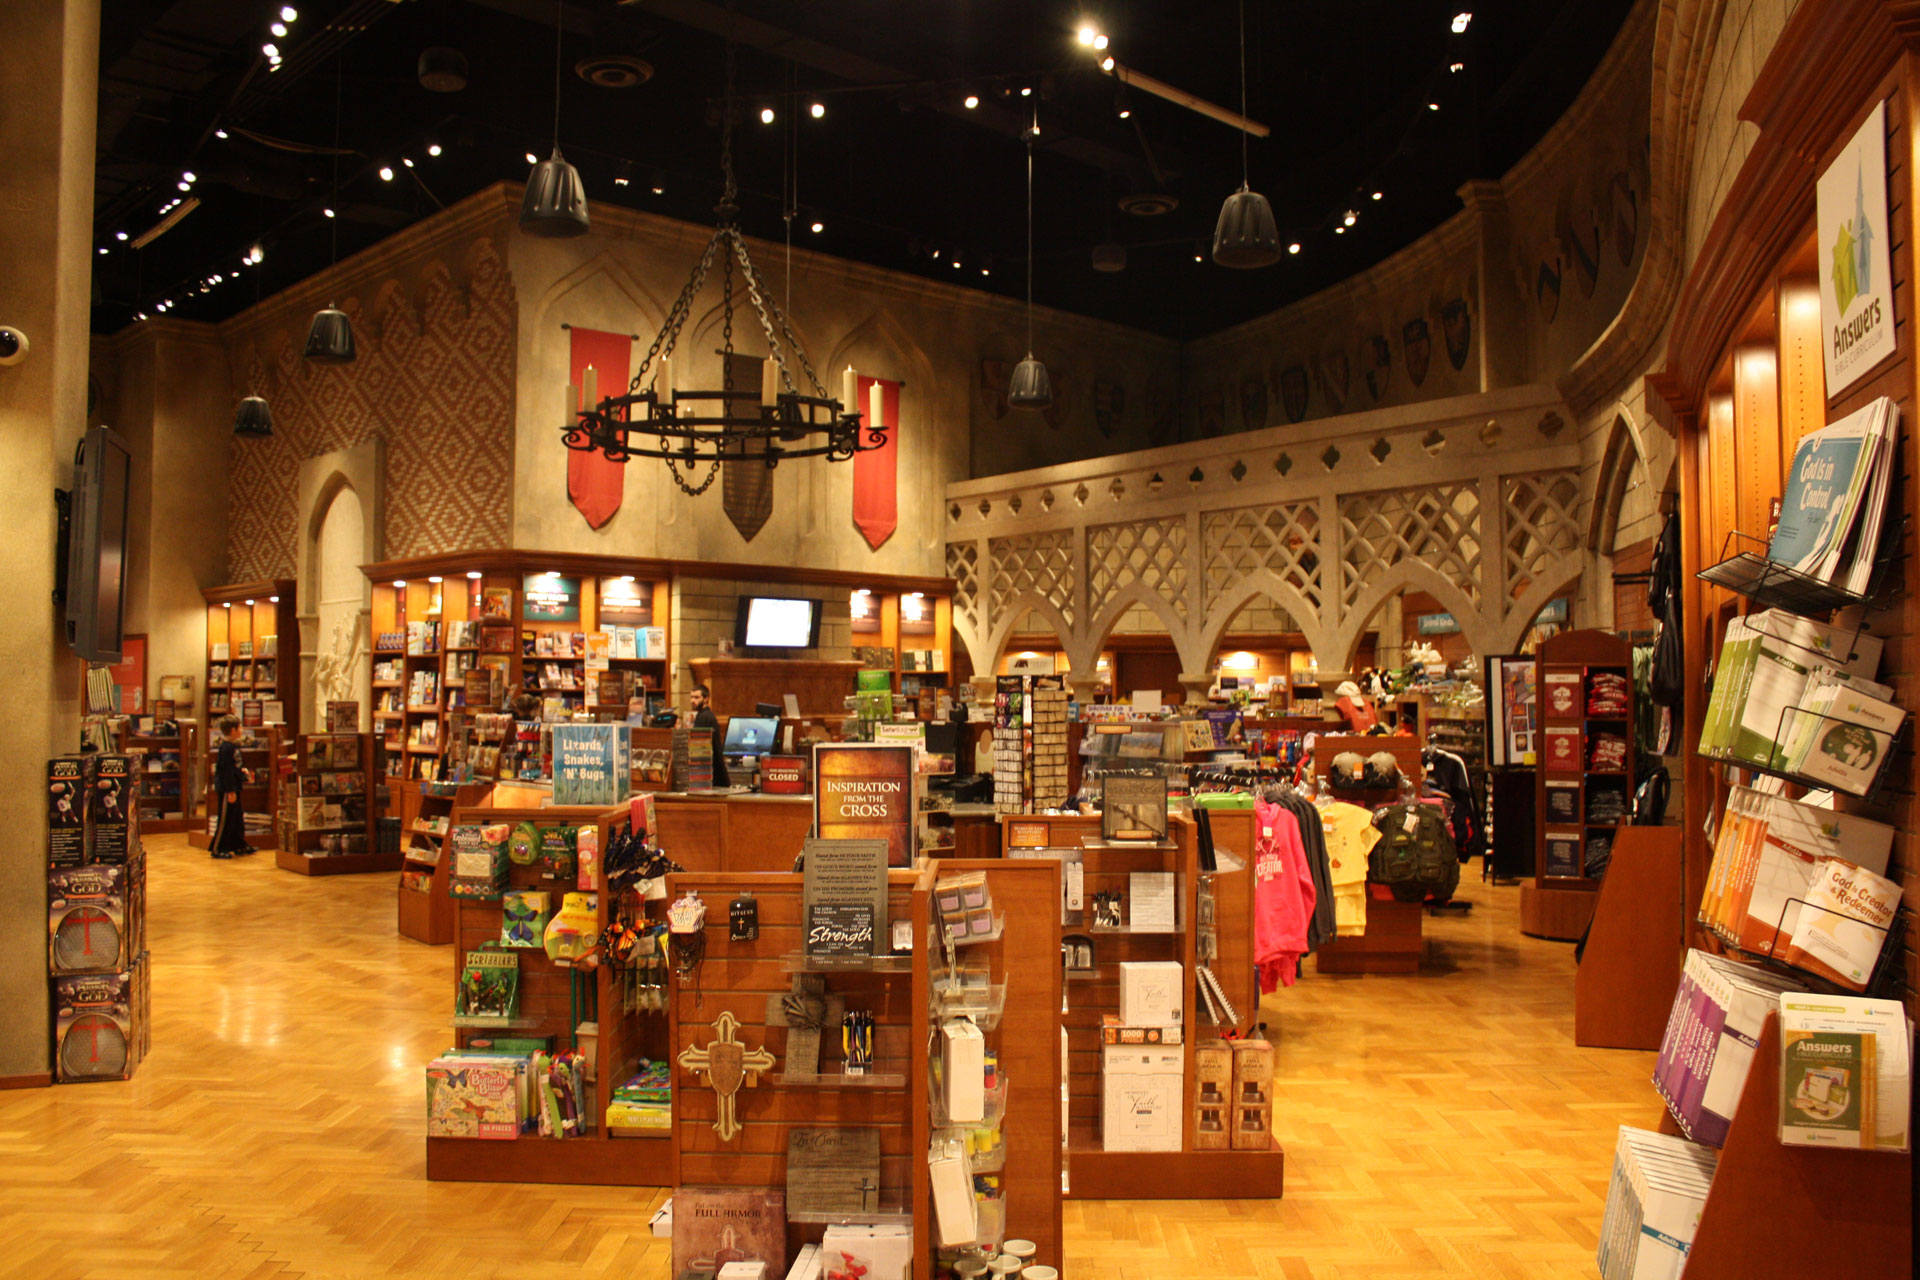 Like every other museum and zoo exhibit, the exit goes through the gift shop.